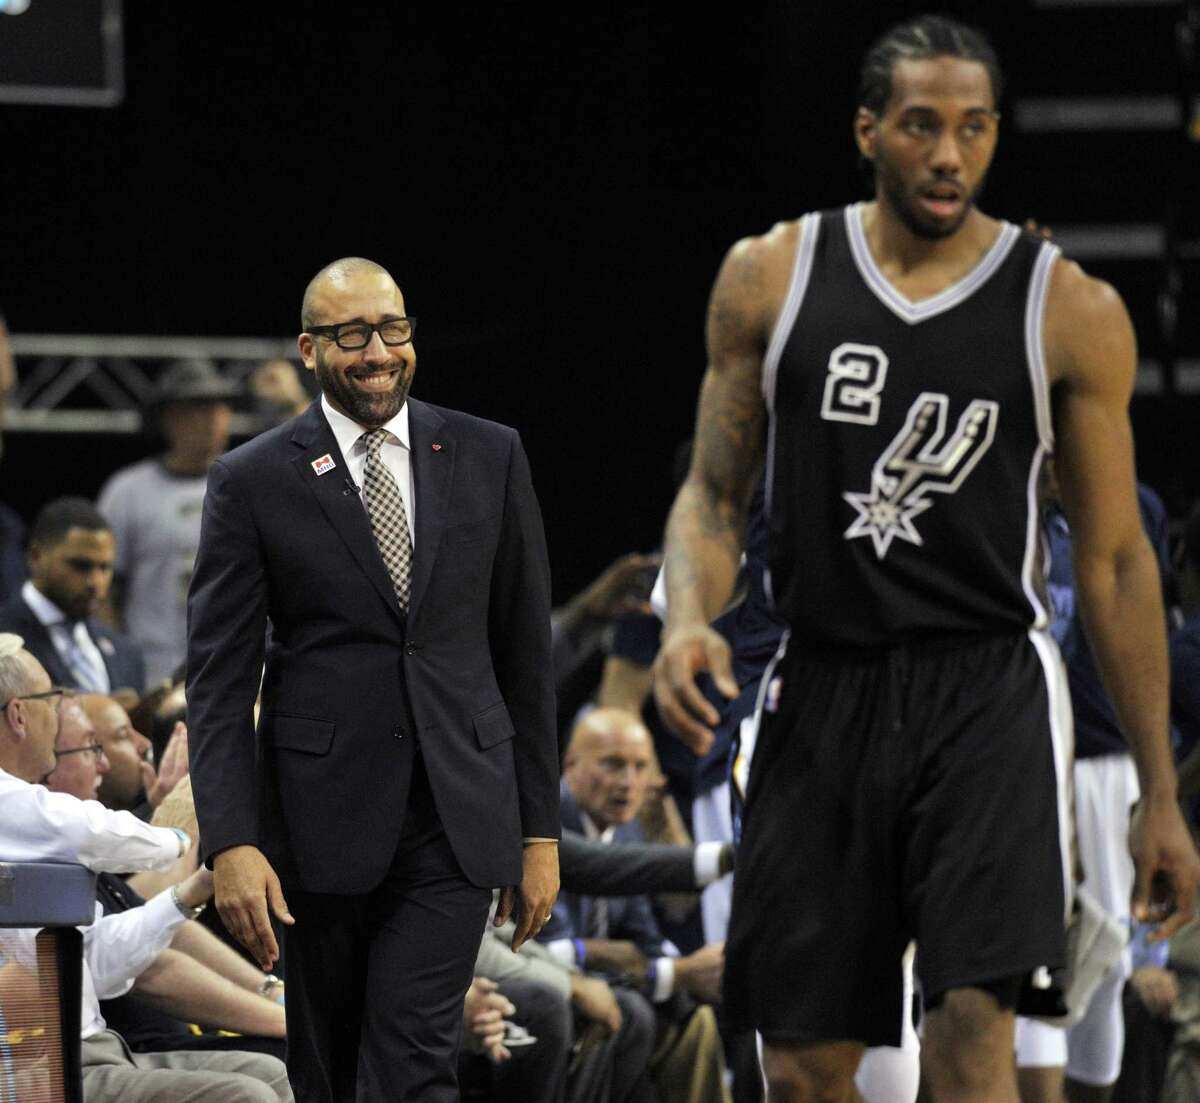 Grizzlies coach David Fizdale smiles from the sideline as Spurs forward Kawhi Leonard walks up the court during the second half of Game 3 on April 20, 2017, in Memphis, Tenn.